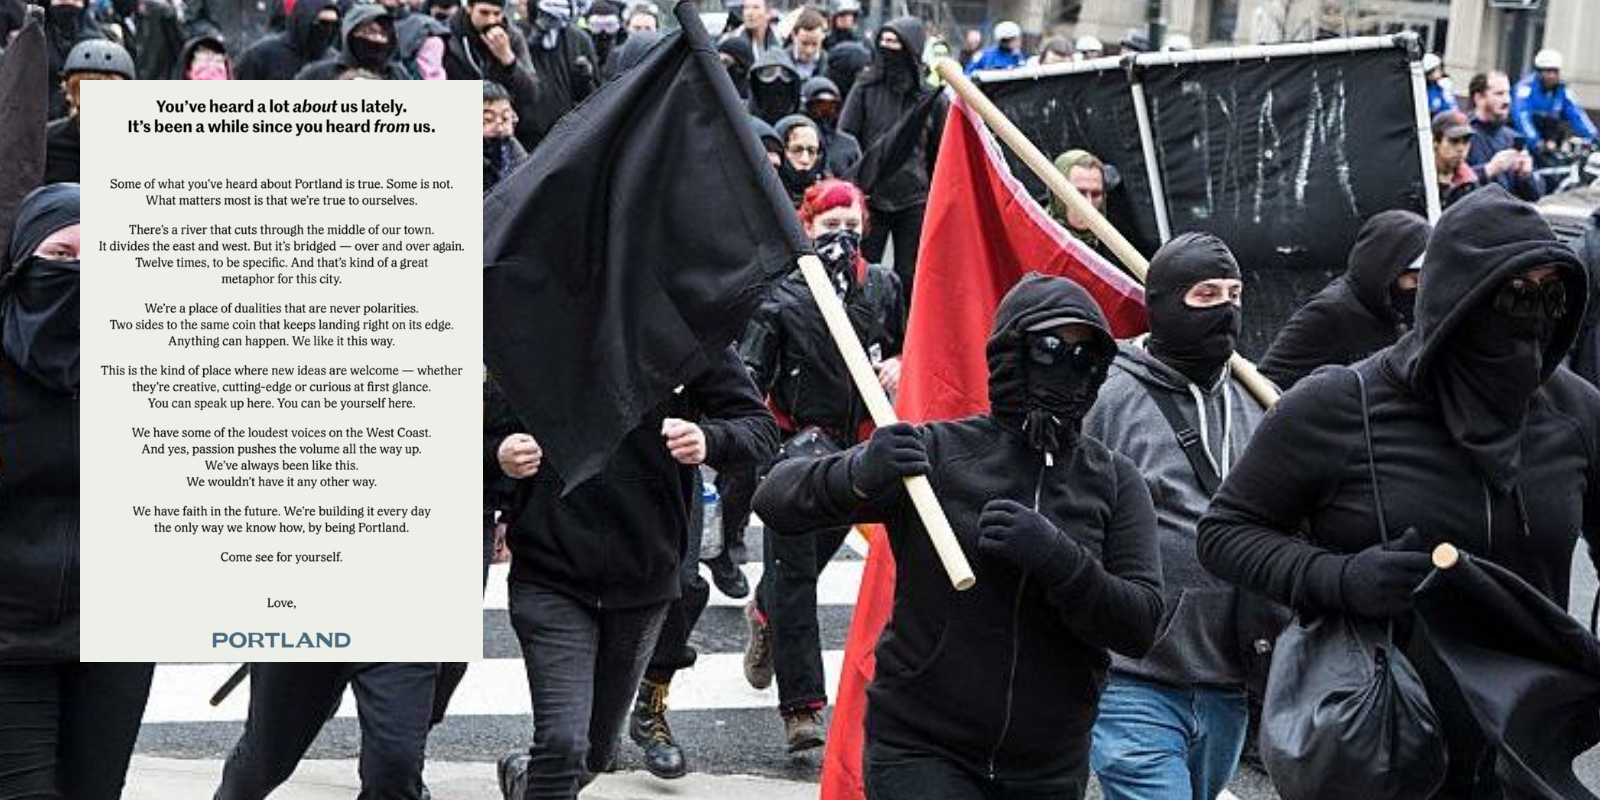 DAMAGE CONTROL: Portland takes out full page ad in The New York Times after year of riots